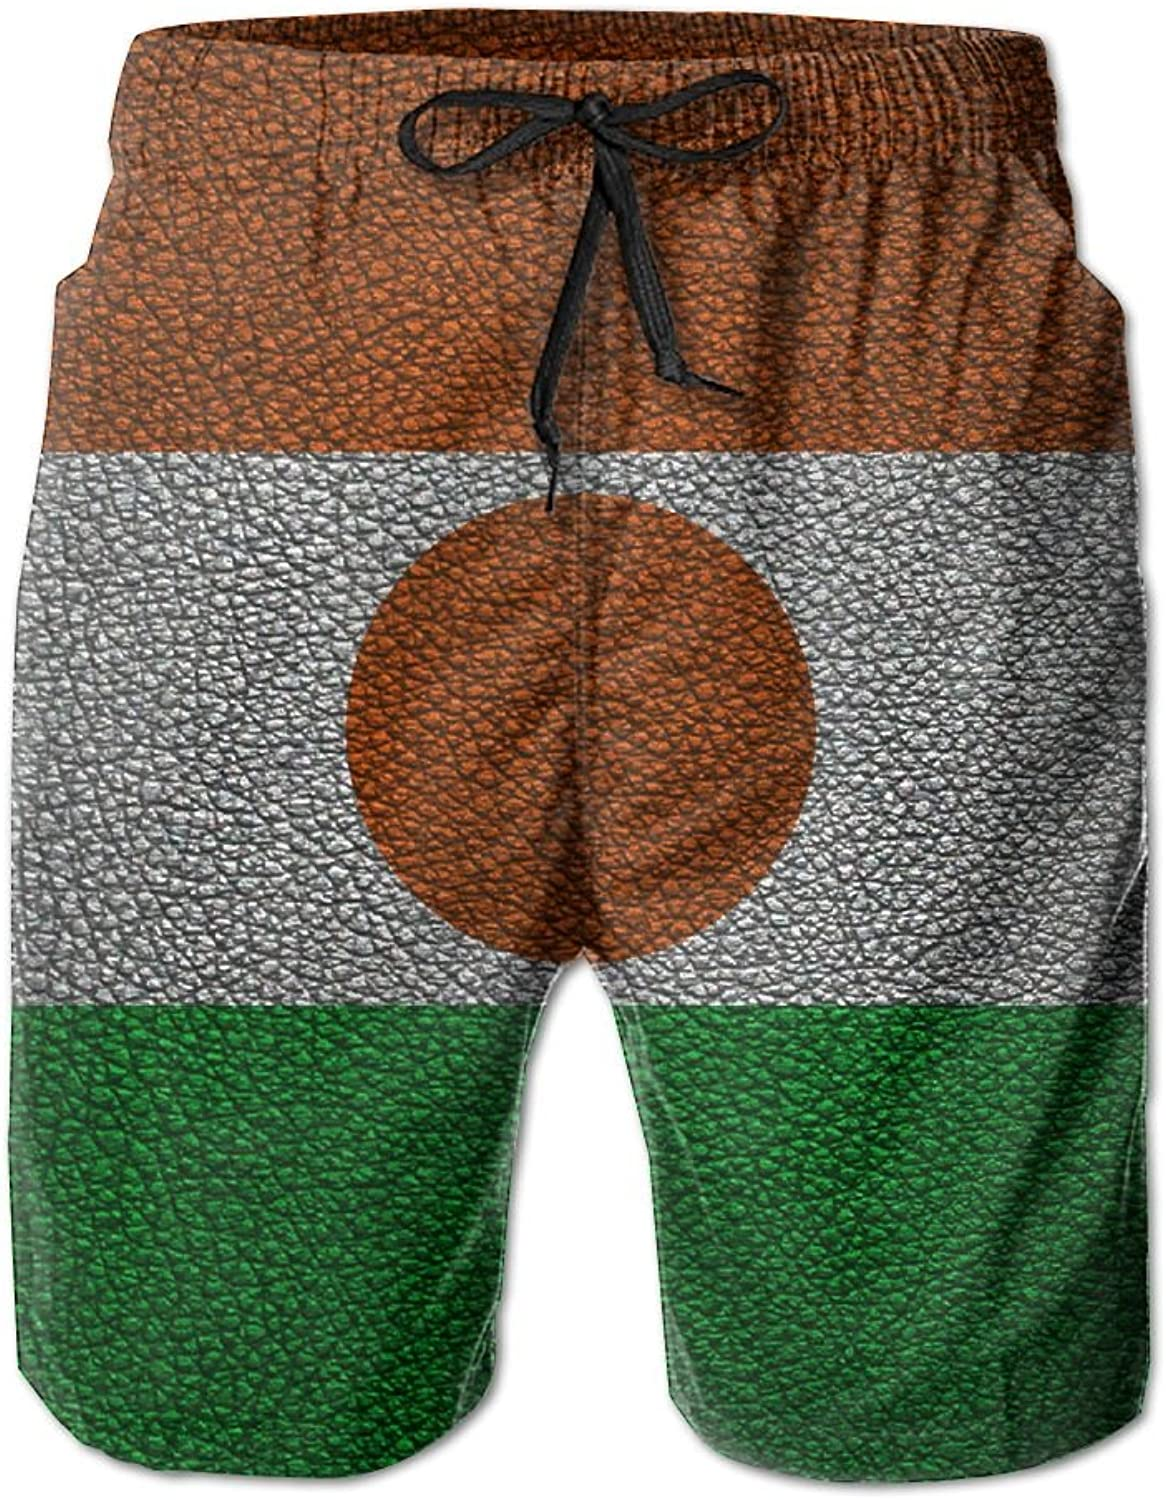 HFSST Flag of Niger Africa Leather PatternHandsome Fashion Summer Cool Shorts Swimming Trunks Beachwear Beach Shorts